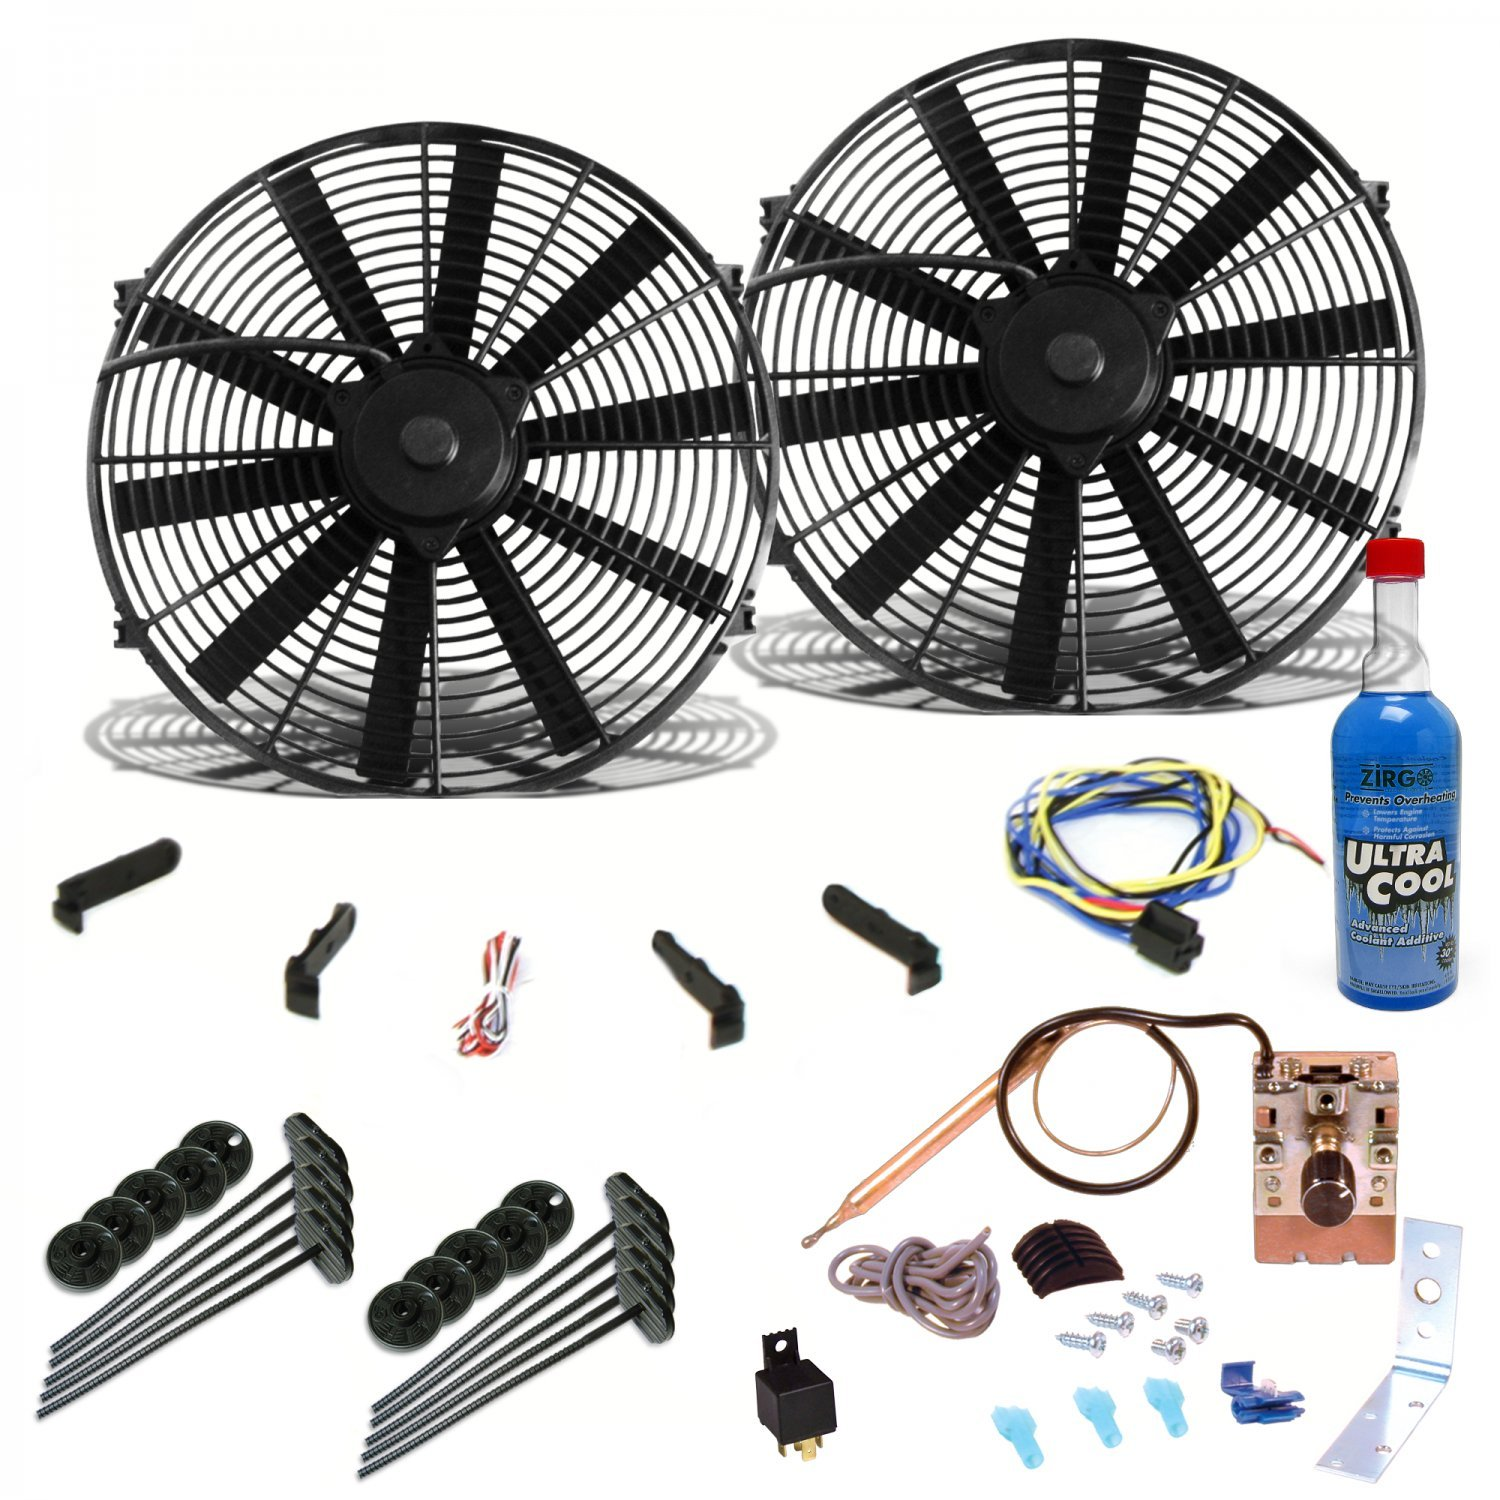 Zirgo 264106 Super Cool Pack (Two 1149 fCFM 10'' Fans, Adjustable Temp Switch, Harness, and Brackets and Additive) by Zirgo